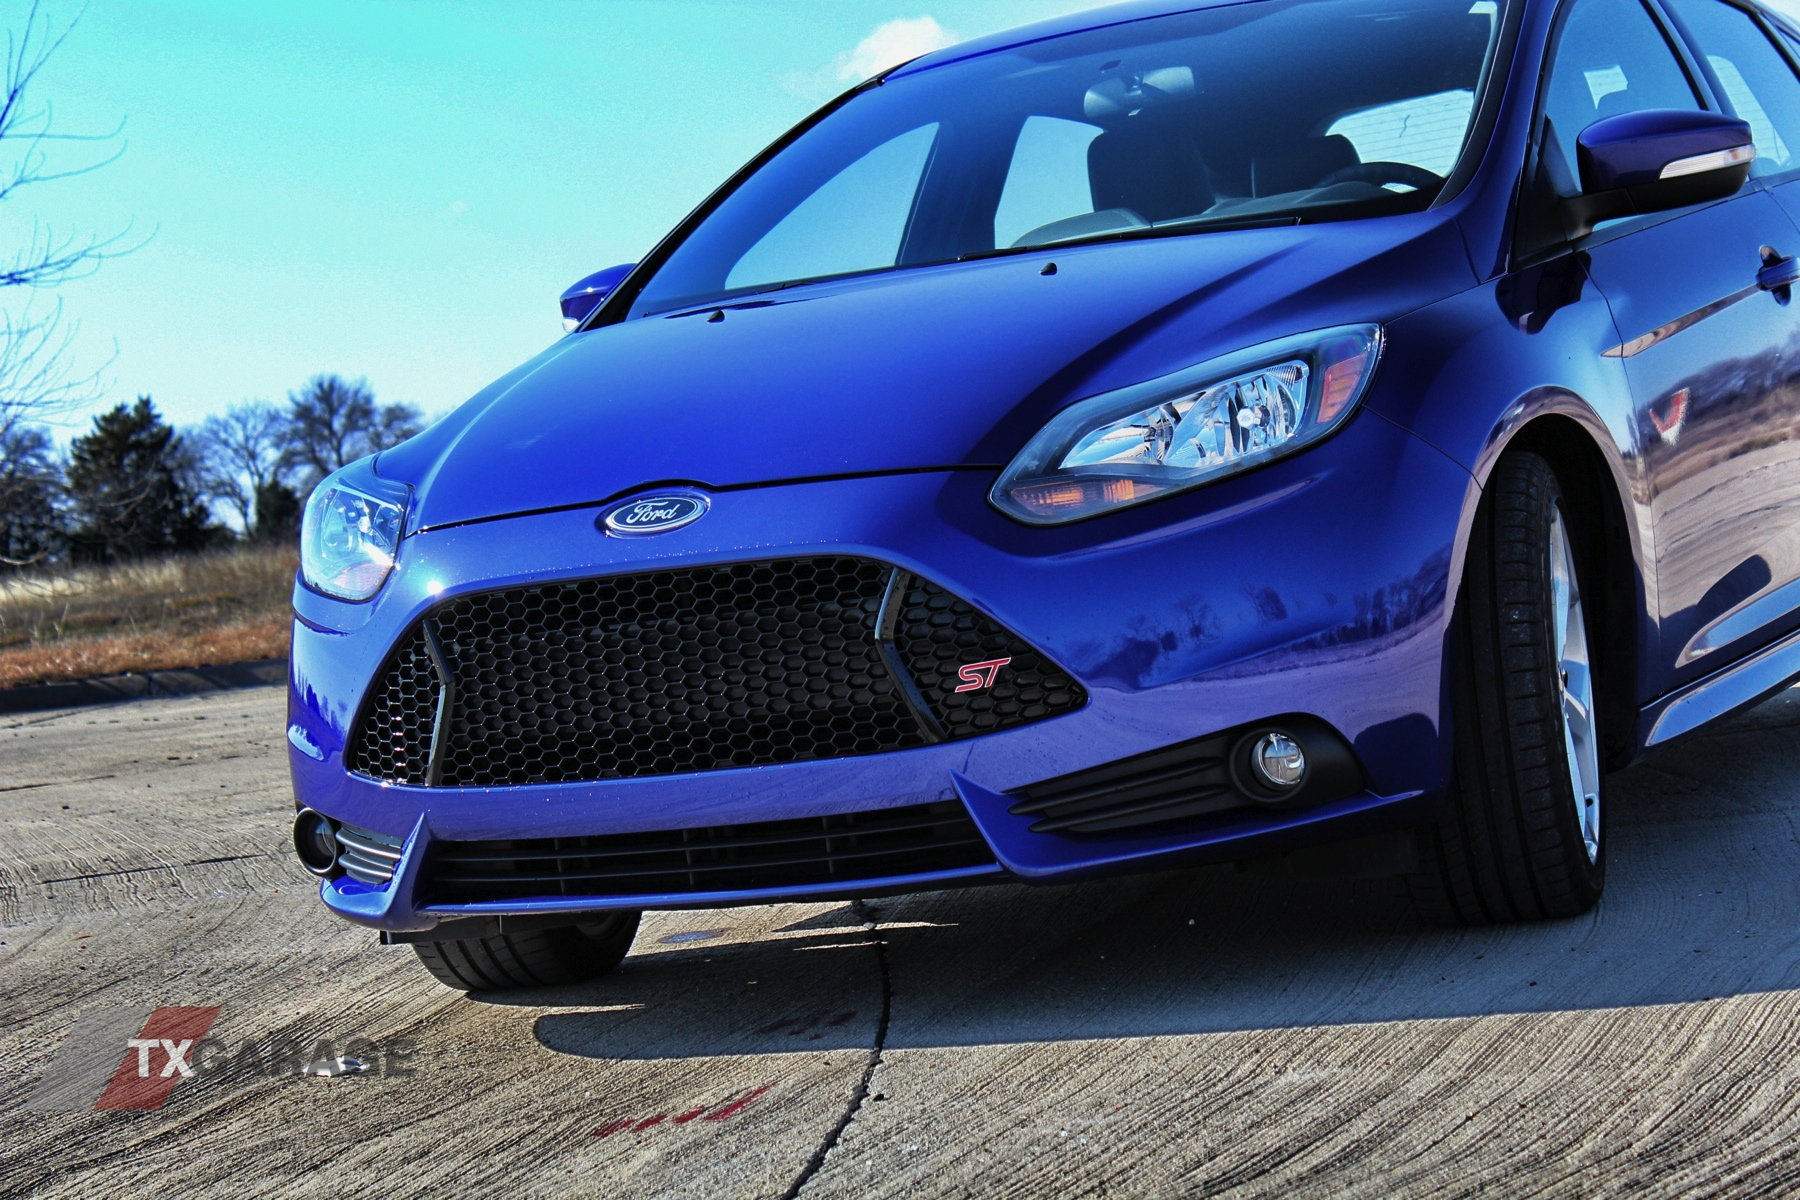 full review of the 2013 ford focus st txgarage. Black Bedroom Furniture Sets. Home Design Ideas